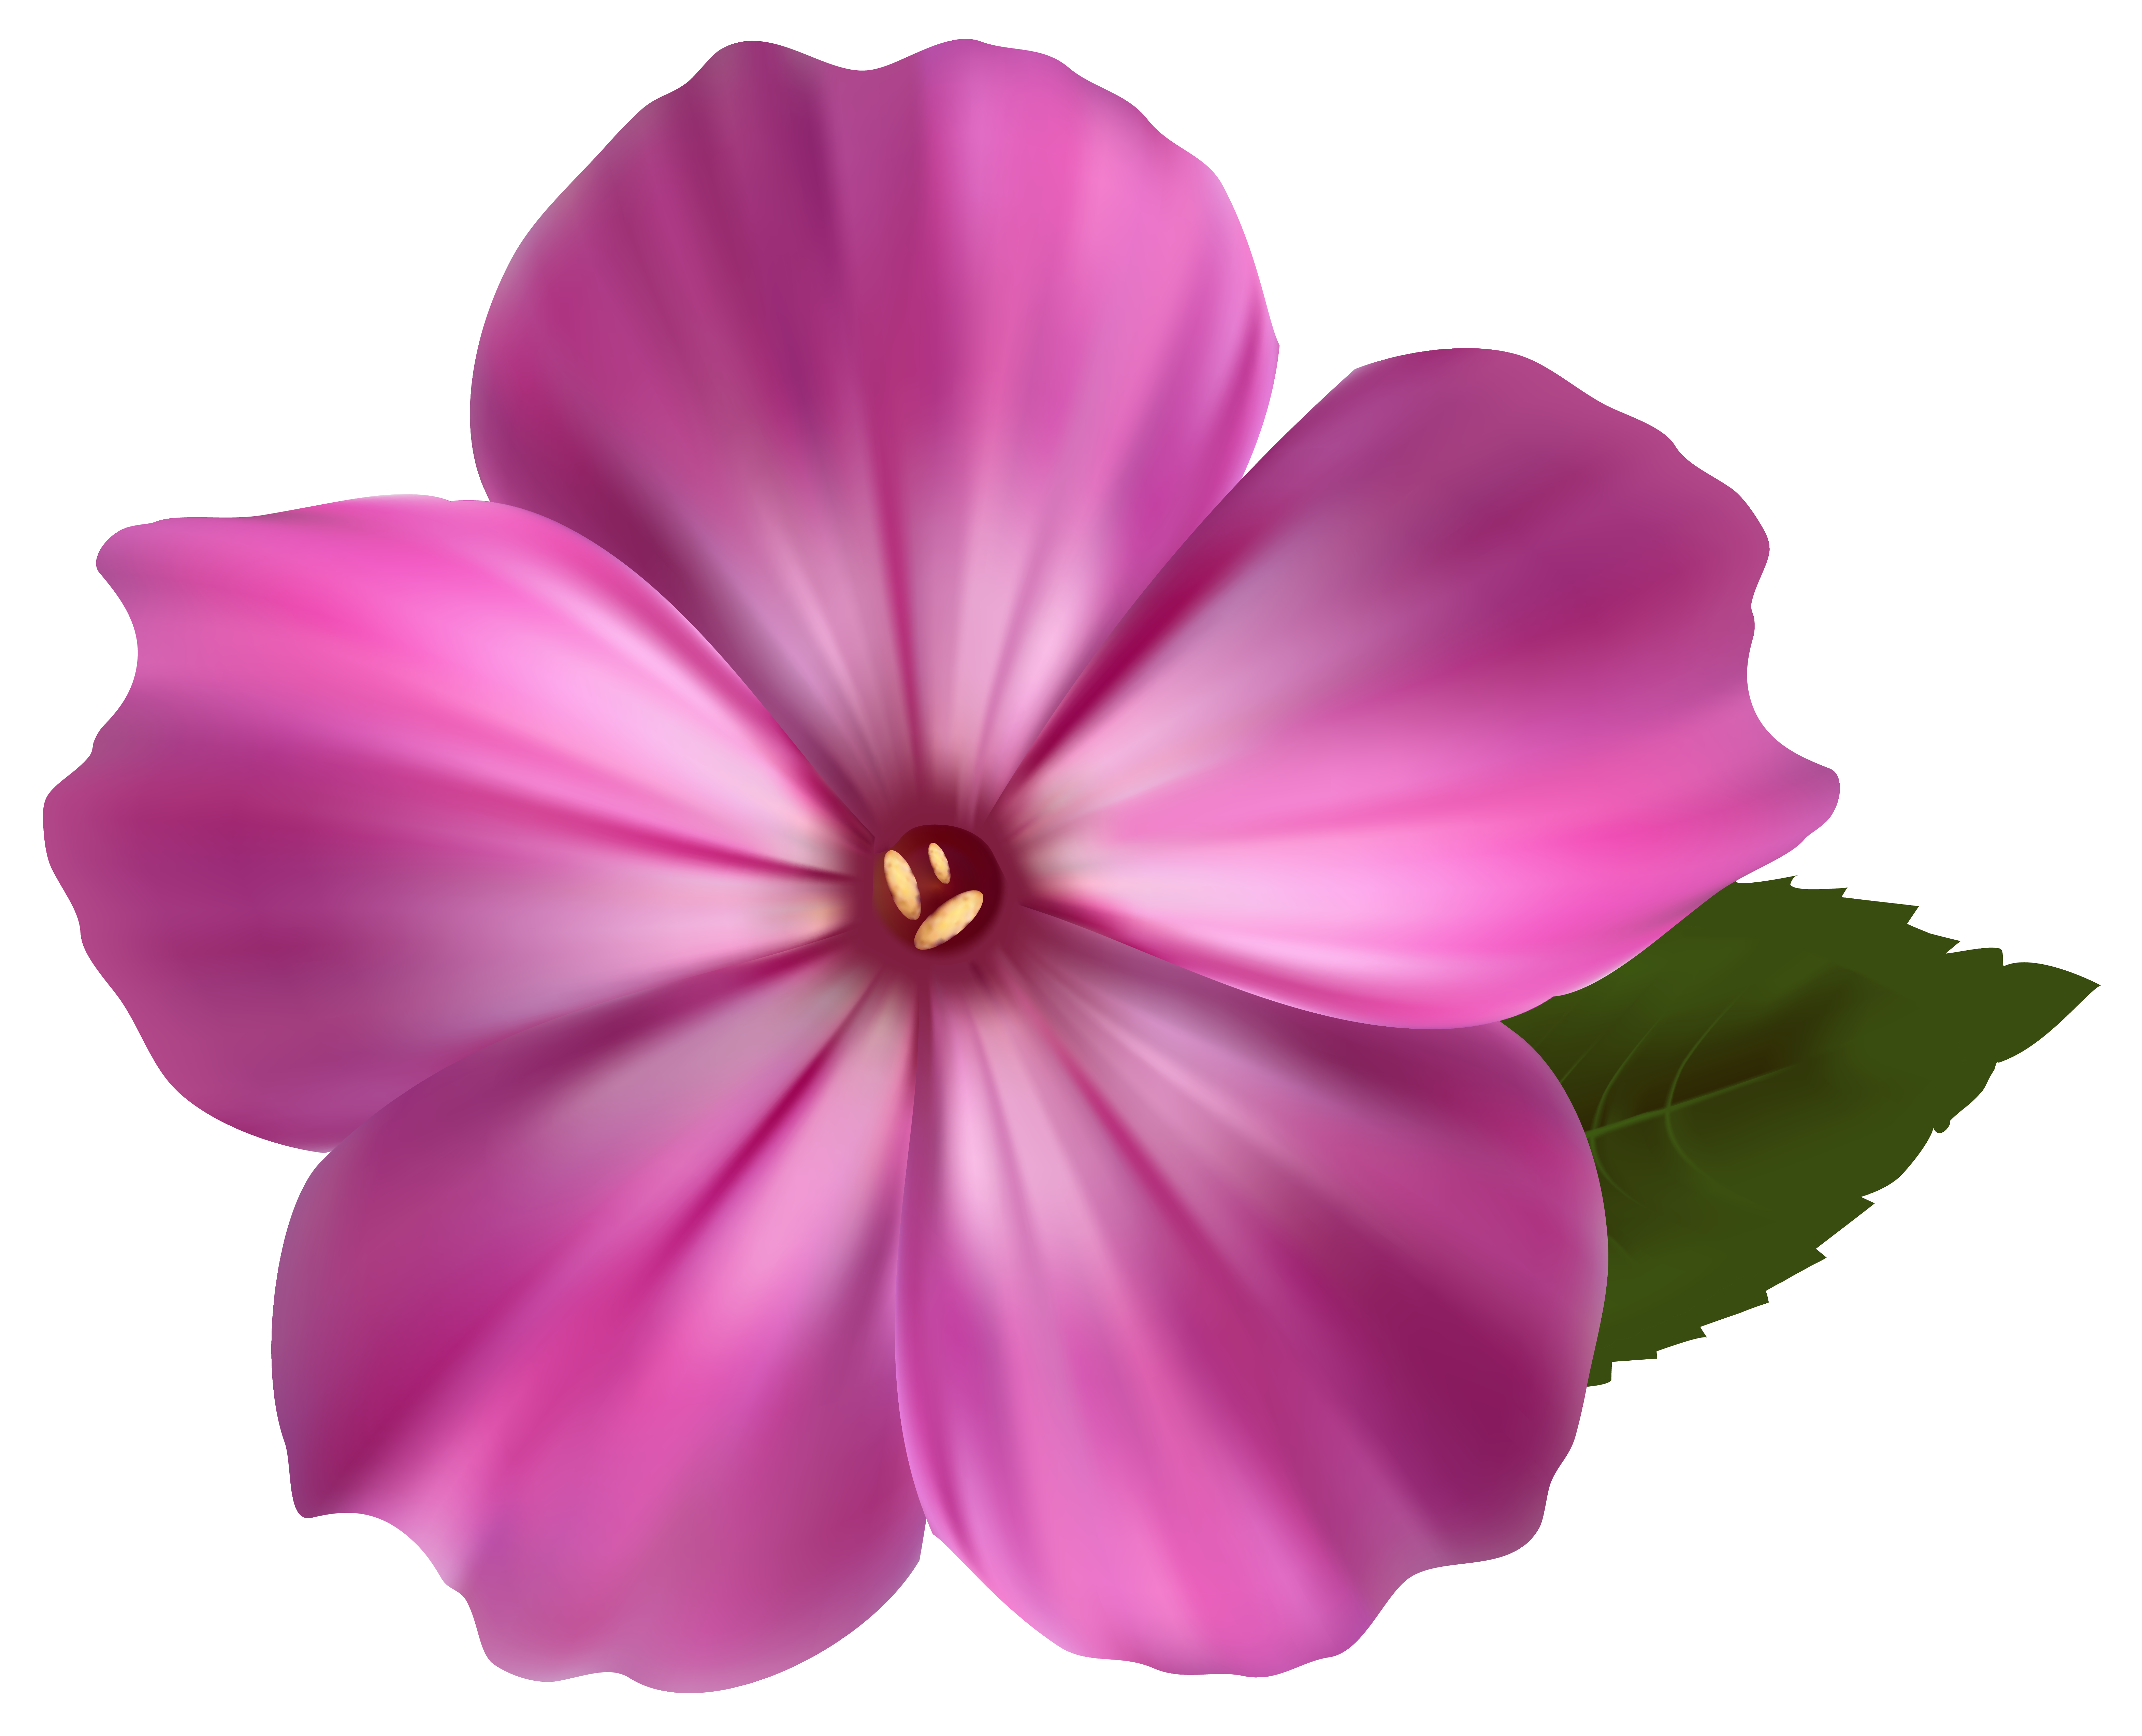 Flower Png Image Clipart Best